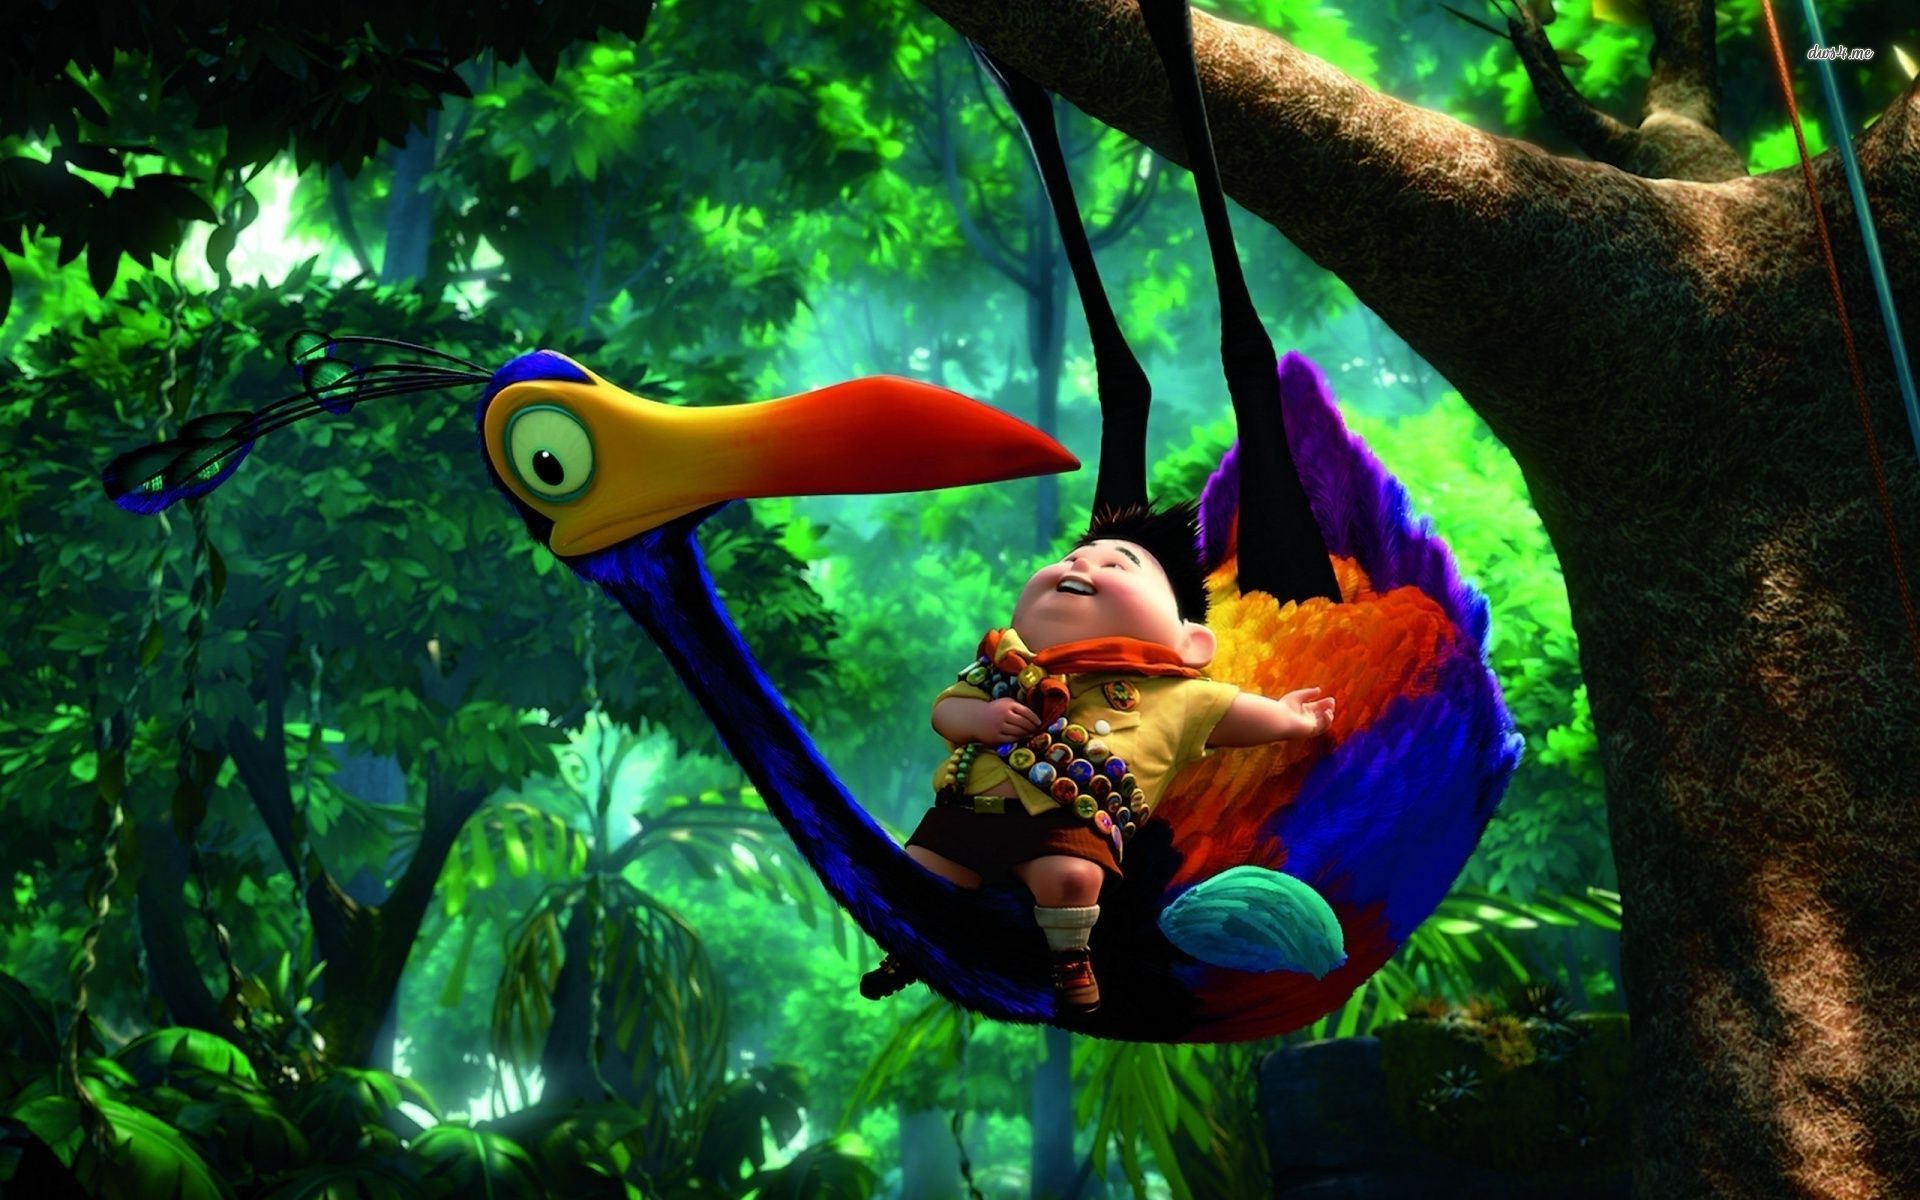 Up The Animated Movie HD Wallpapers - All HD Wallpapers